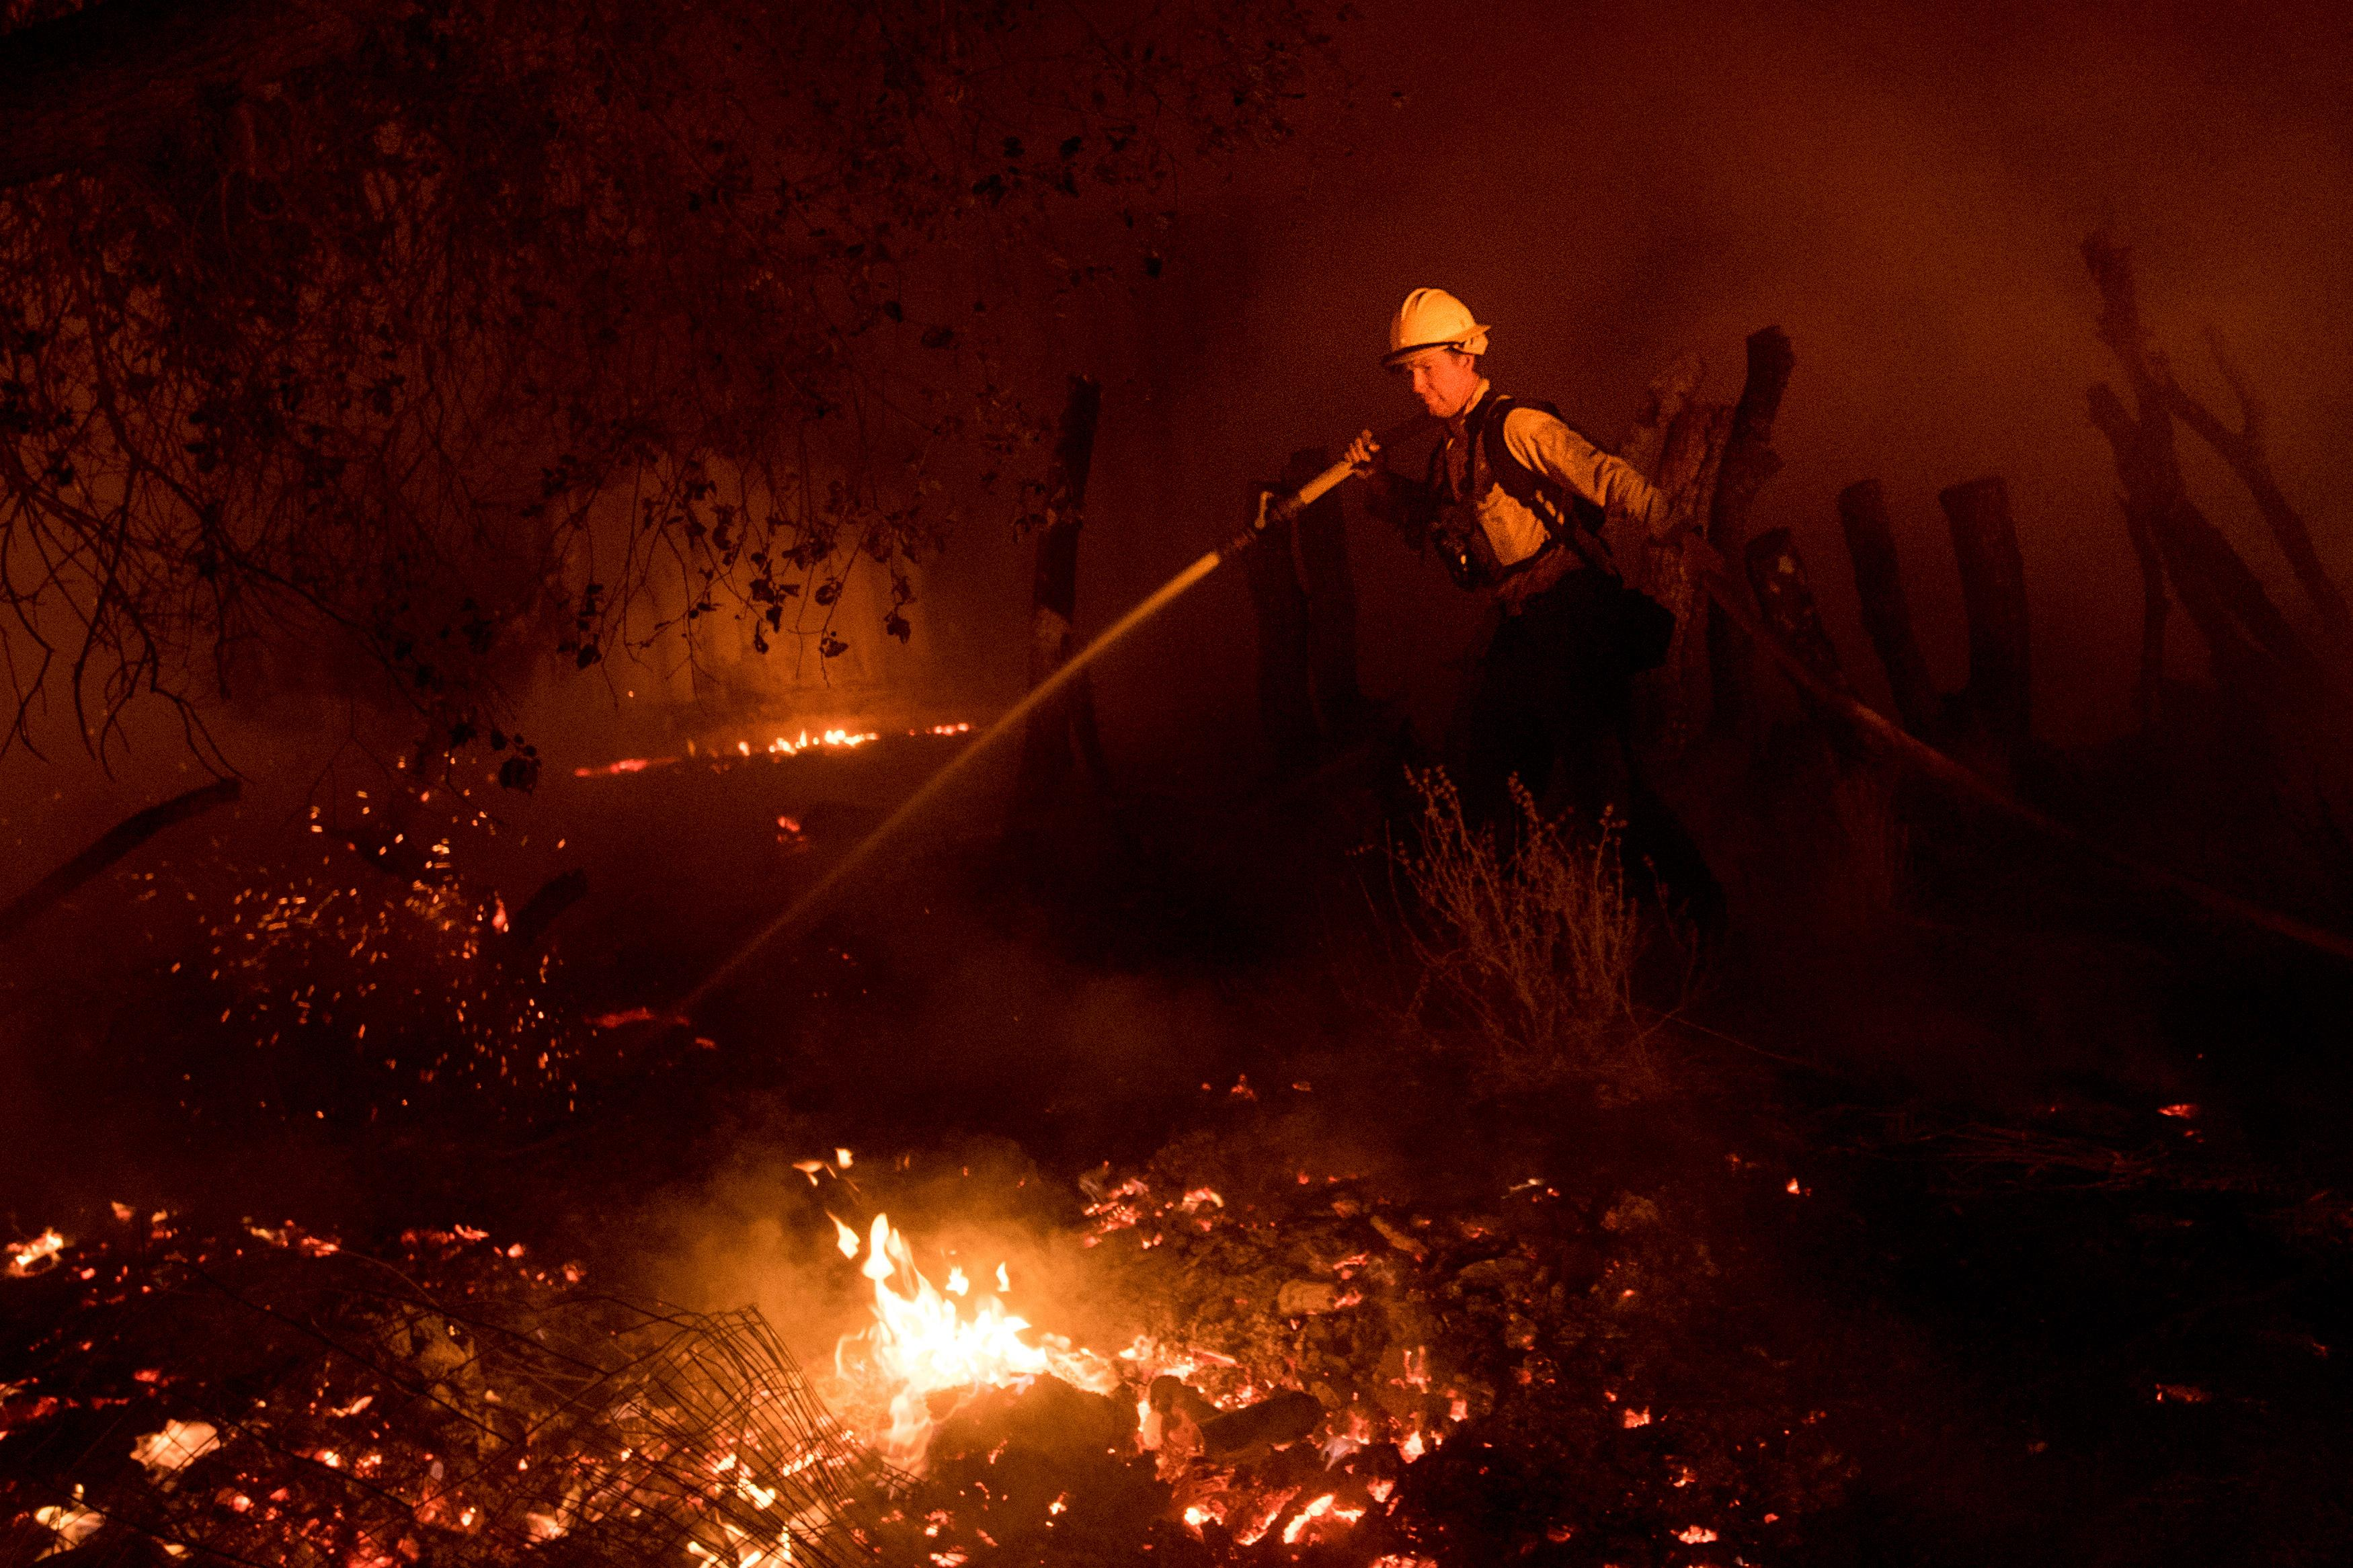 A firefighter battles a wildfire in Ojai, Calif., on Thursday, Dec. 7, 2017. (AP Photo/Noah Berger)